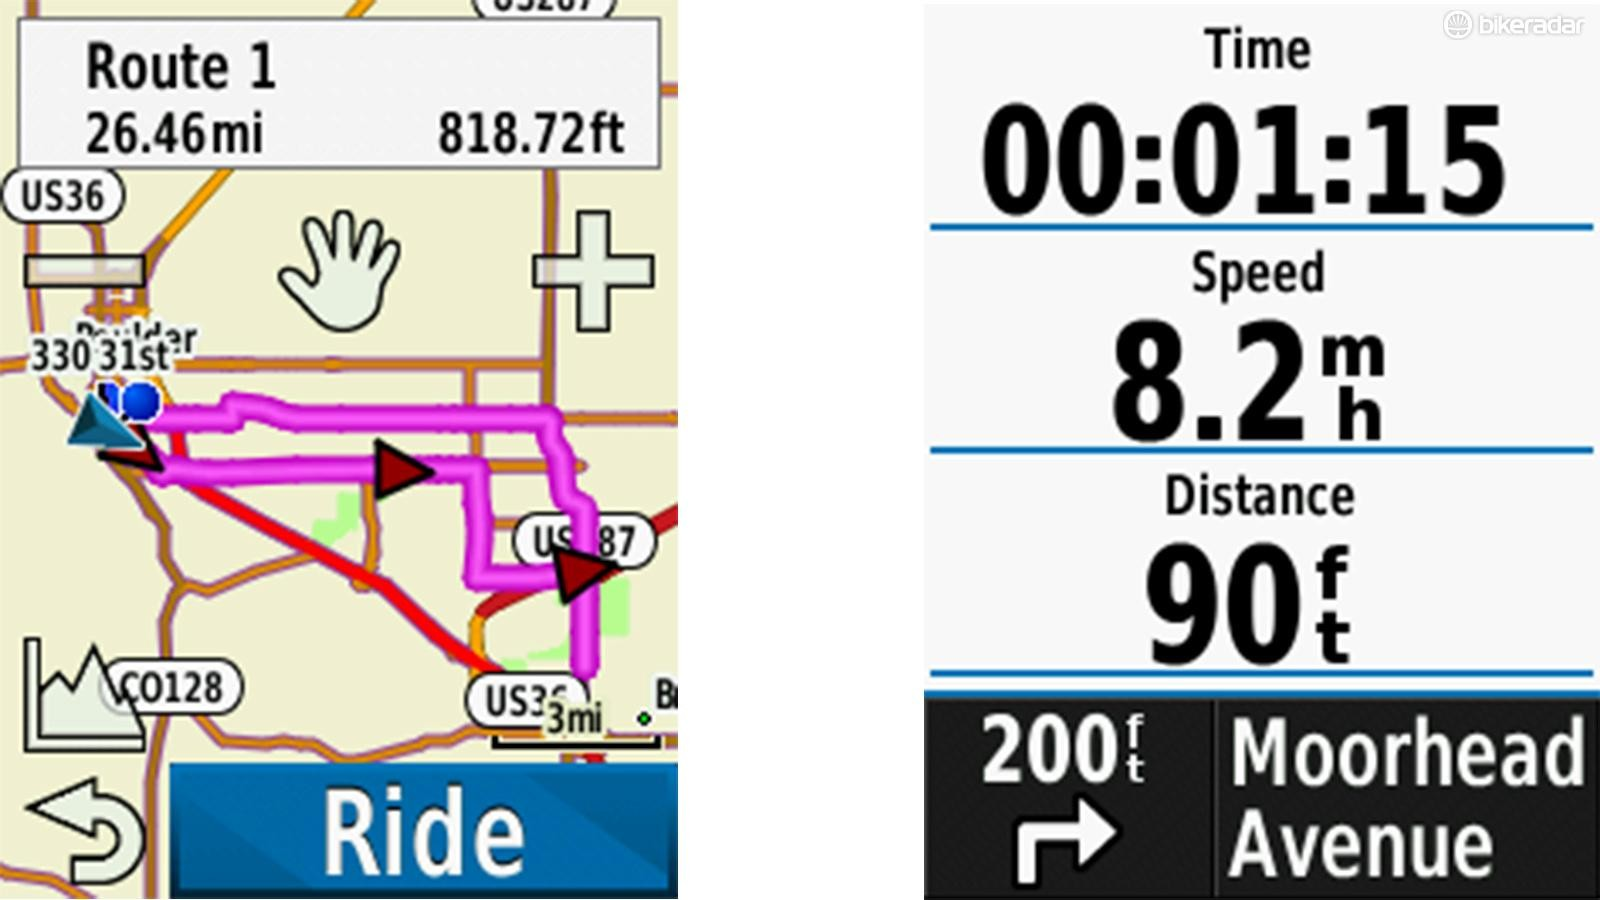 You can have the Course Creator give you options for different lengths routes. I'm not impressed with that, but I am impressed with how the unit gives you instructions from any page while you're riding